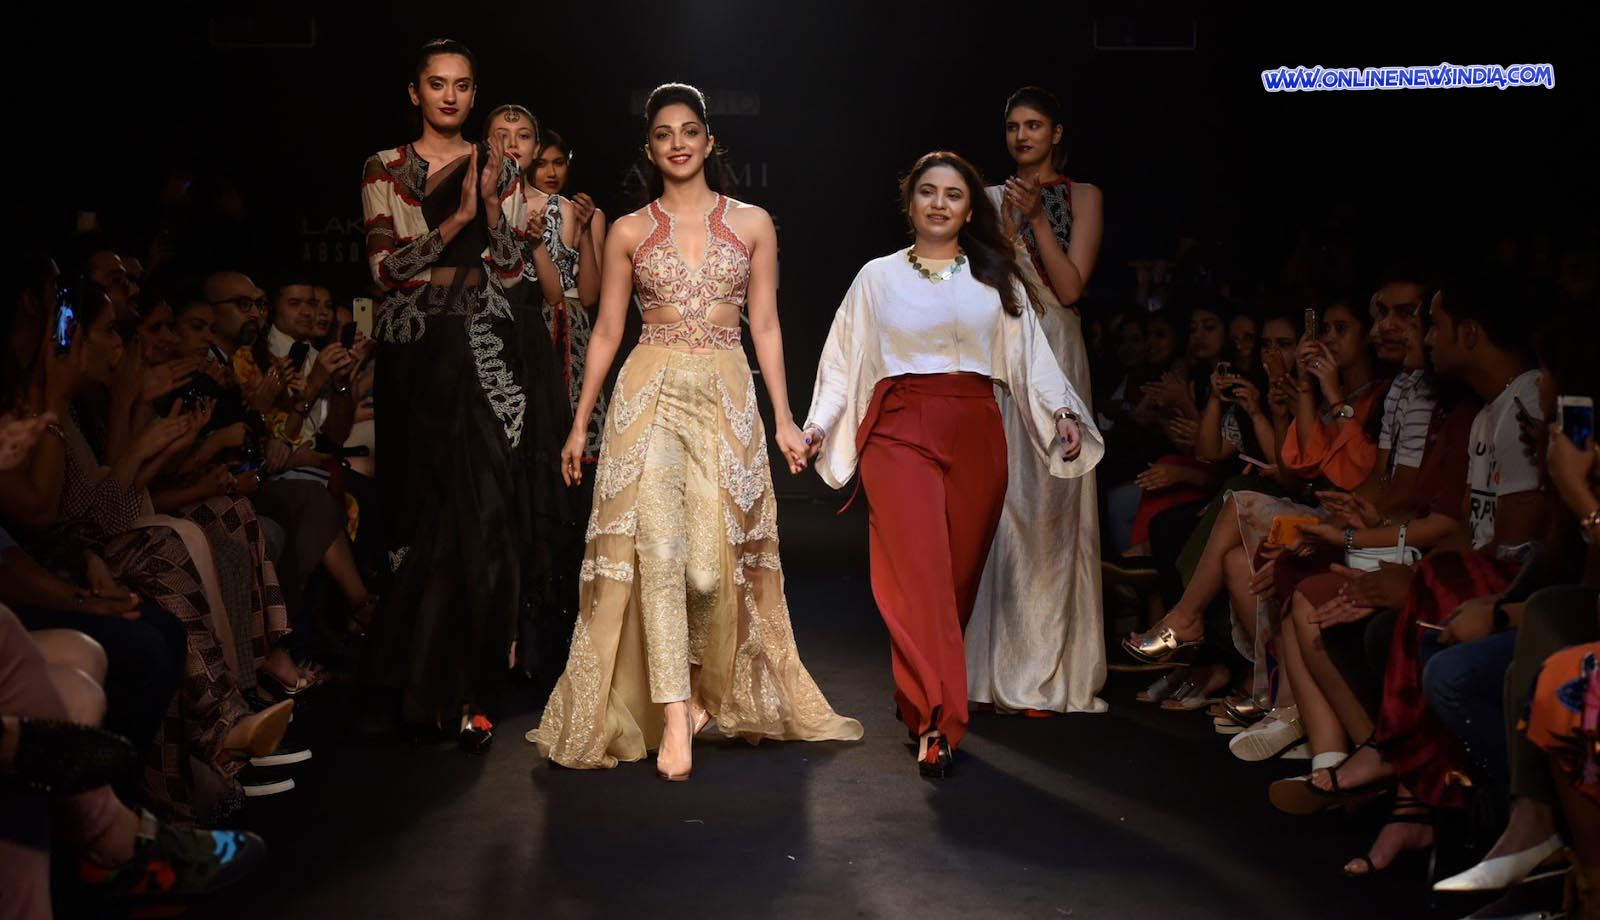 Neha Agarwal with her Showstopper Kiara Advani at Lakme Fashion Week